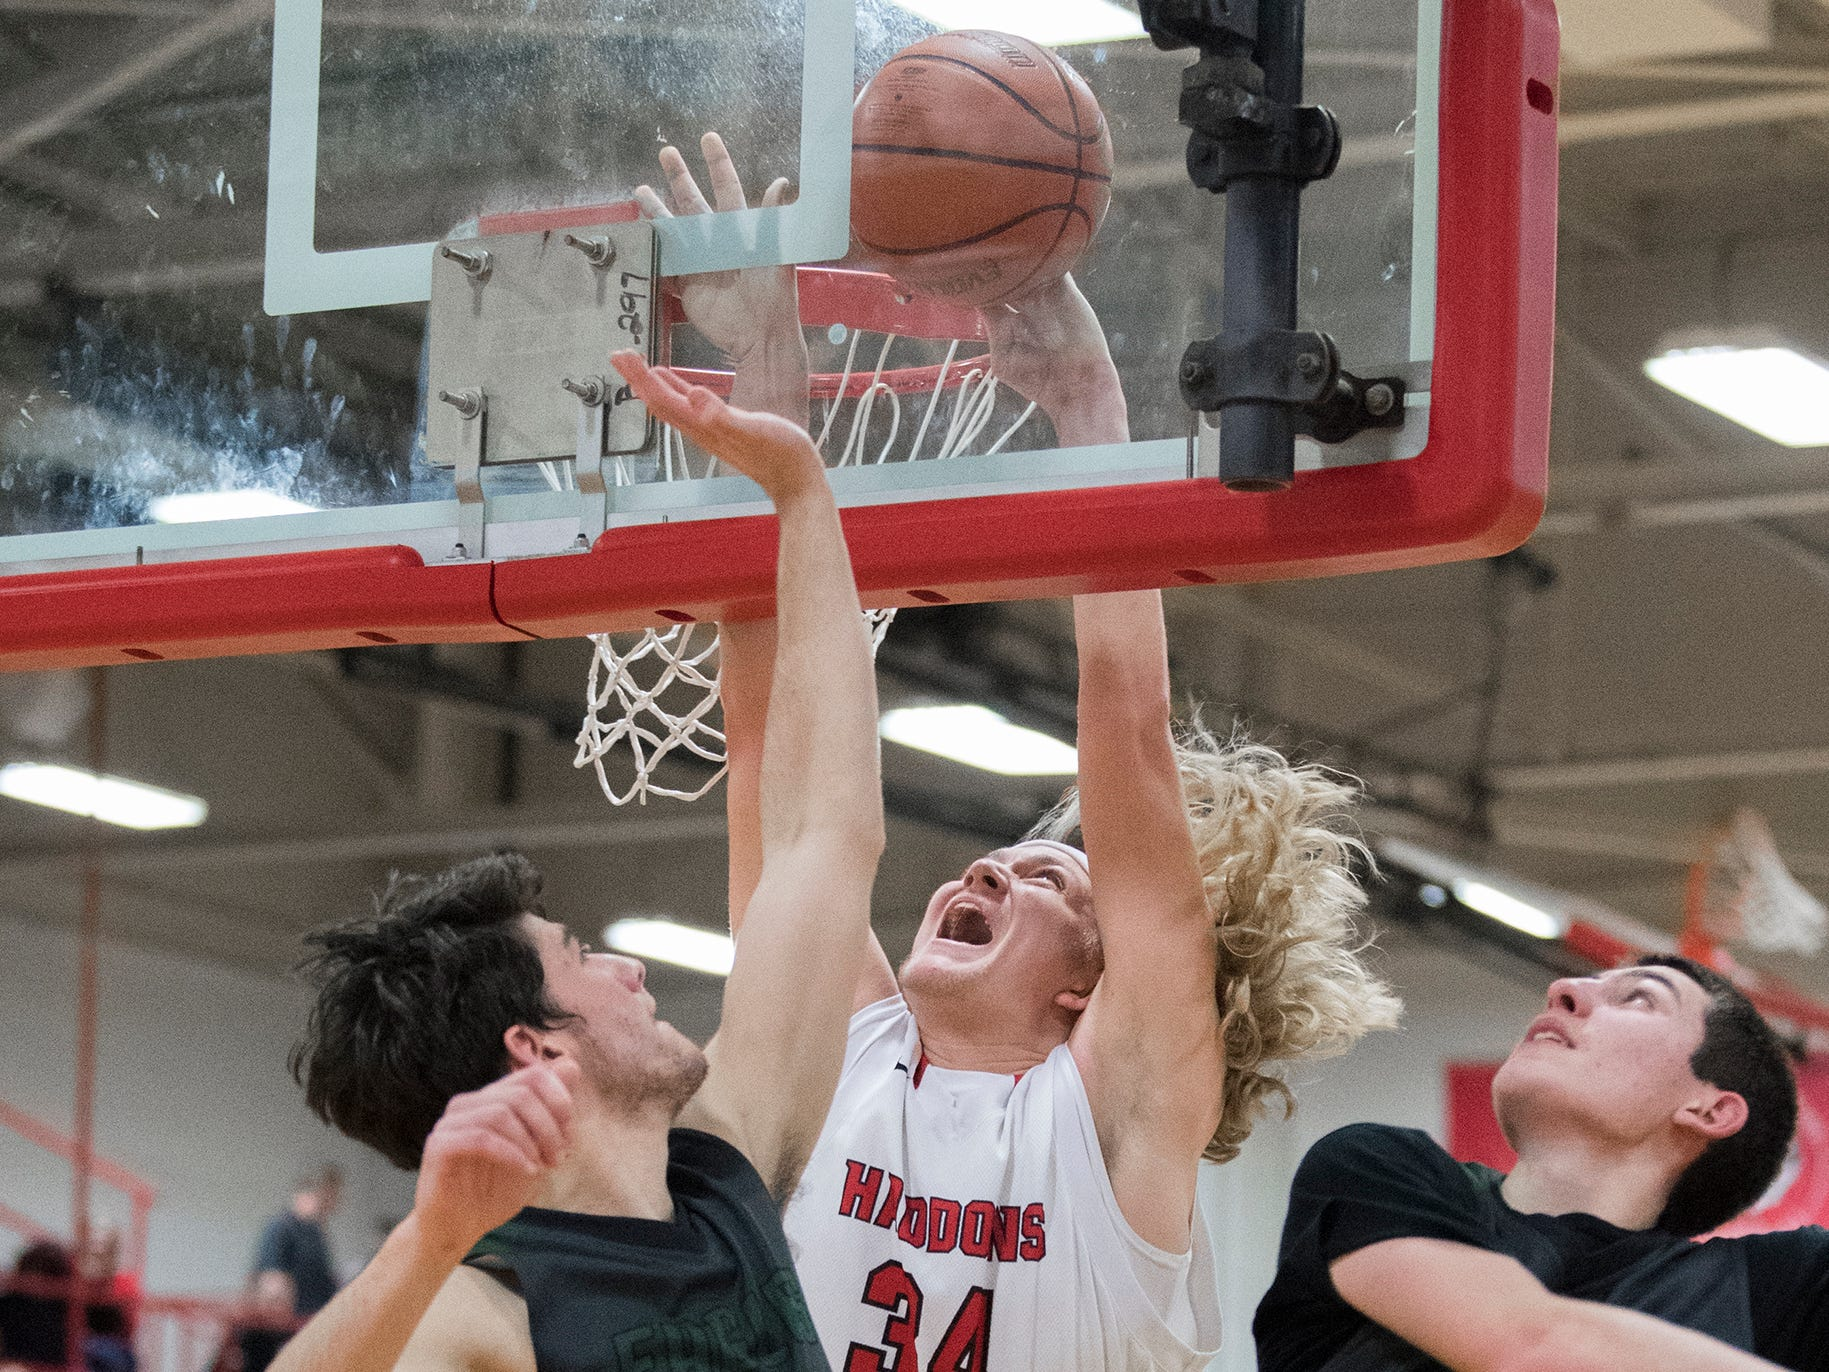 Haddonfield's Dylan Heine (34) attempts a basket against West Deptford Friday, March 1, 2019 at Cherry Hill High School East in Cherry Hill, N.J. Haddonfield won 51-30.